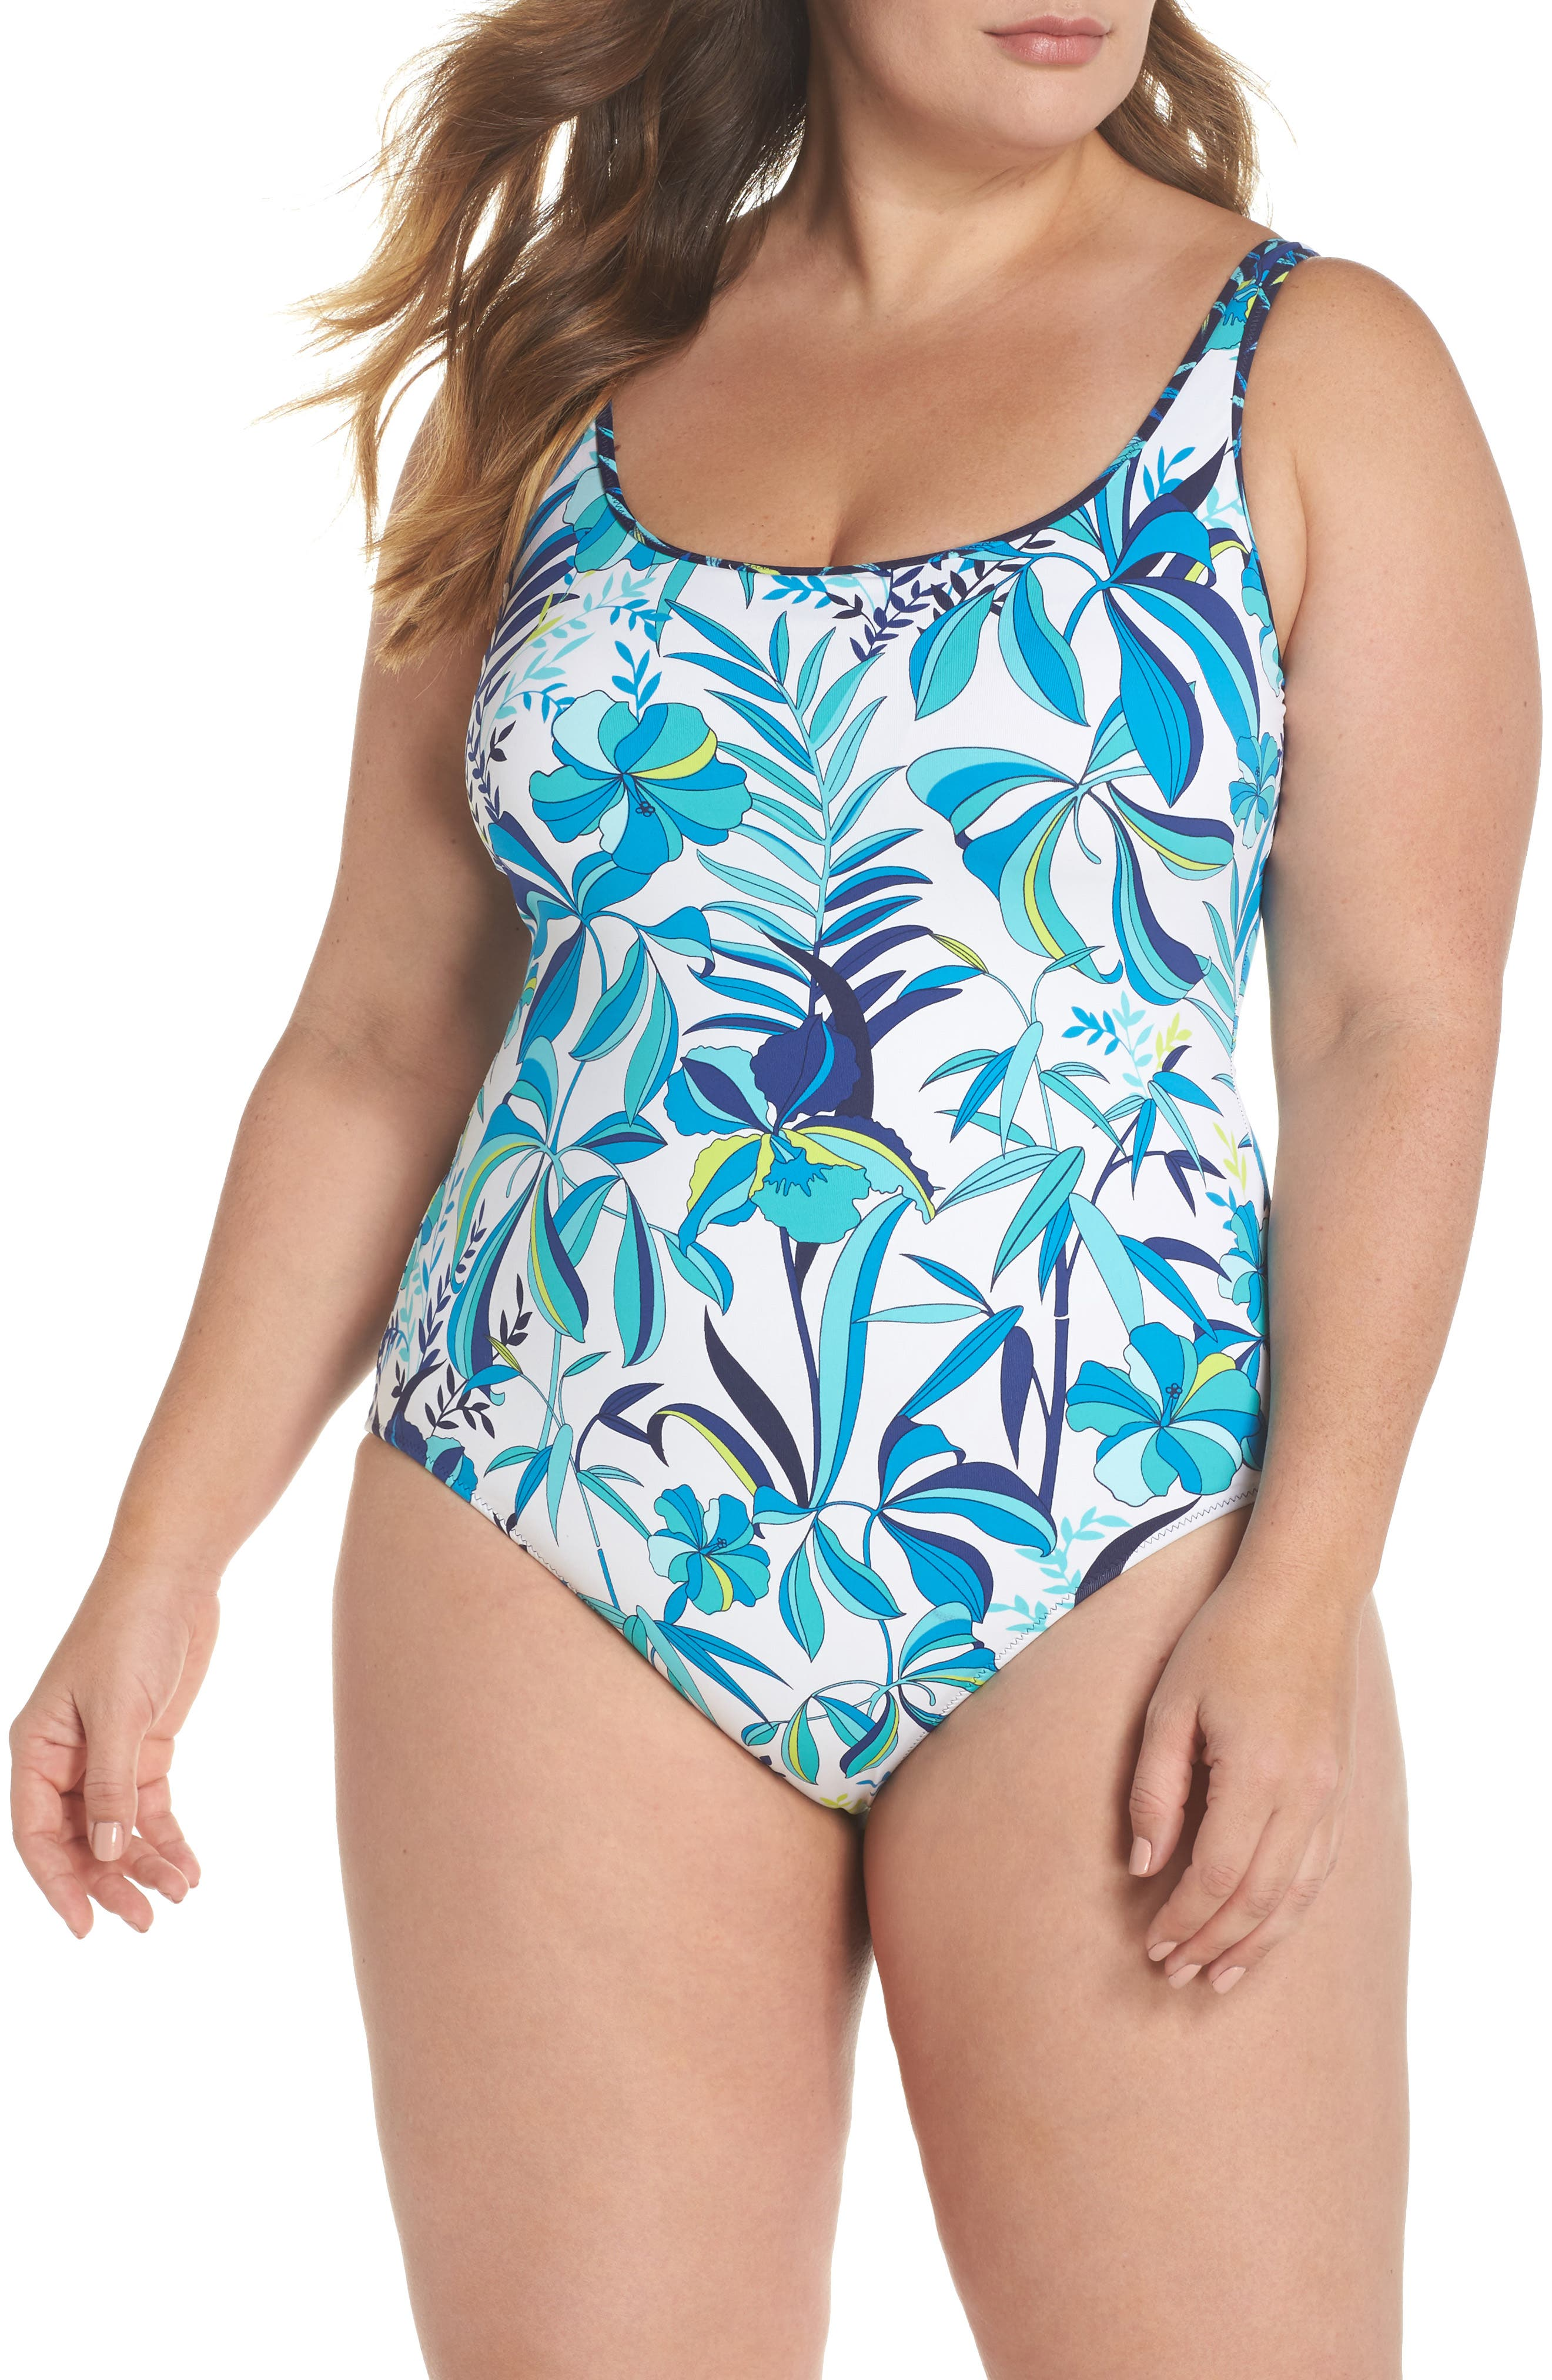 Tropical Swirl Reversible One-Piece Swimsuit,                         Main,                         color, 100